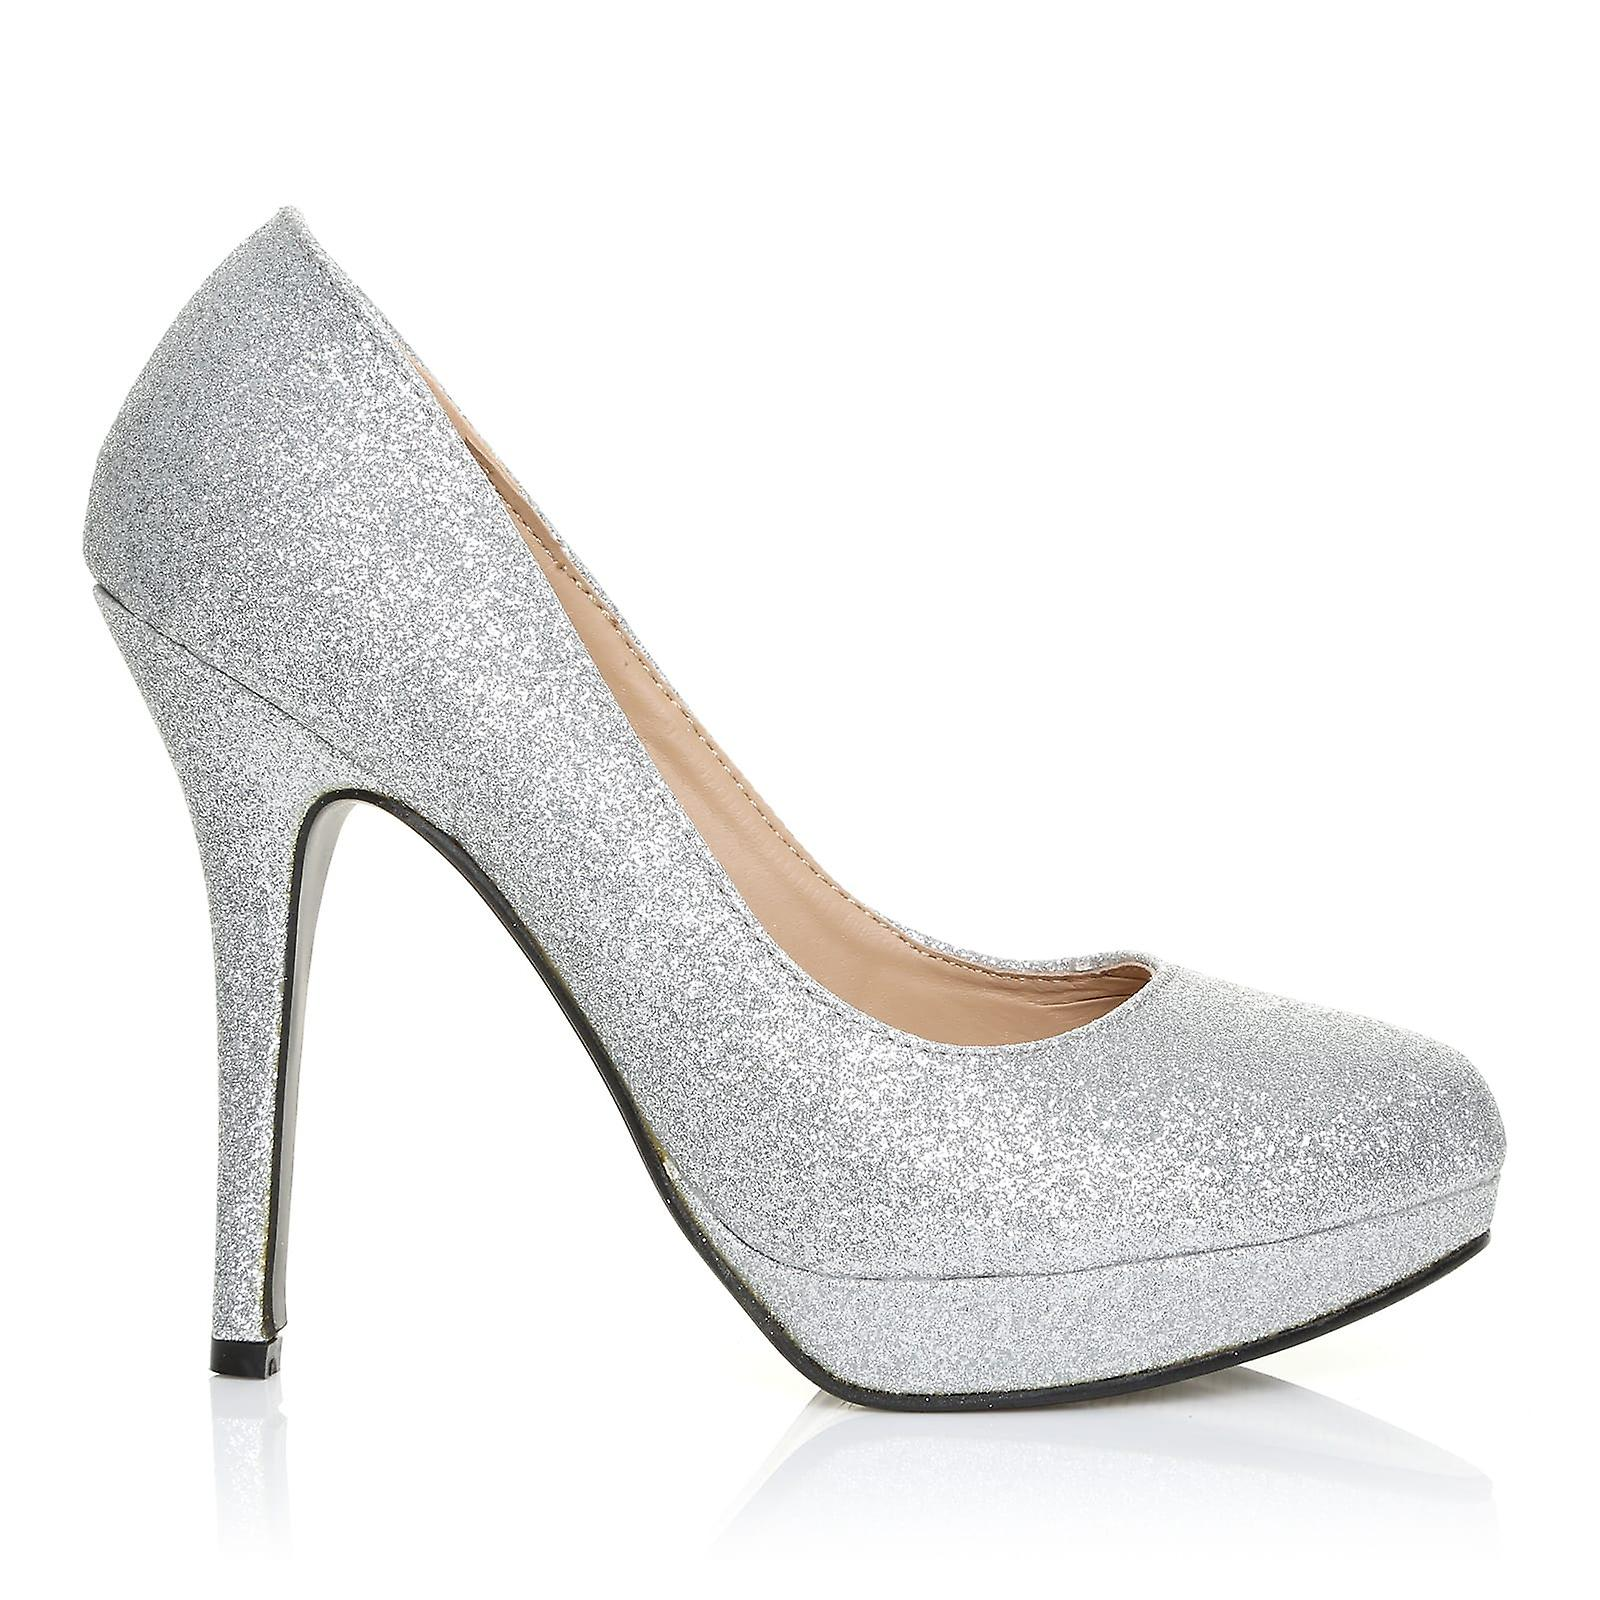 EVE Silver Glitter Stiletto Shoes High Heel Platform Court Shoes Stiletto 500574